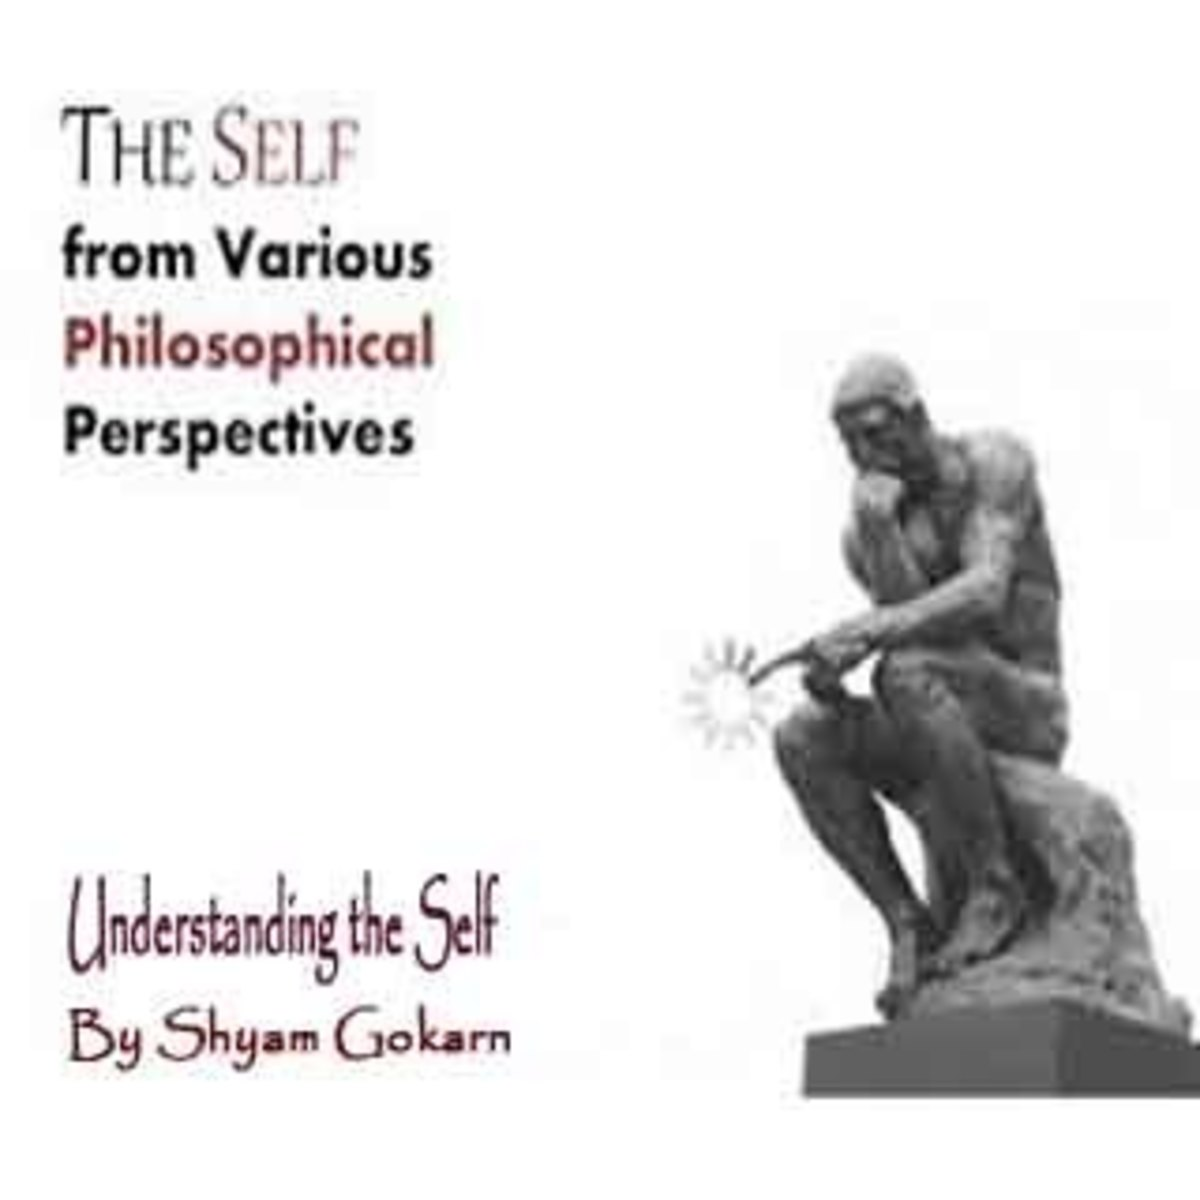 The Role of Abstractions in the Philosophical Understanding of Self